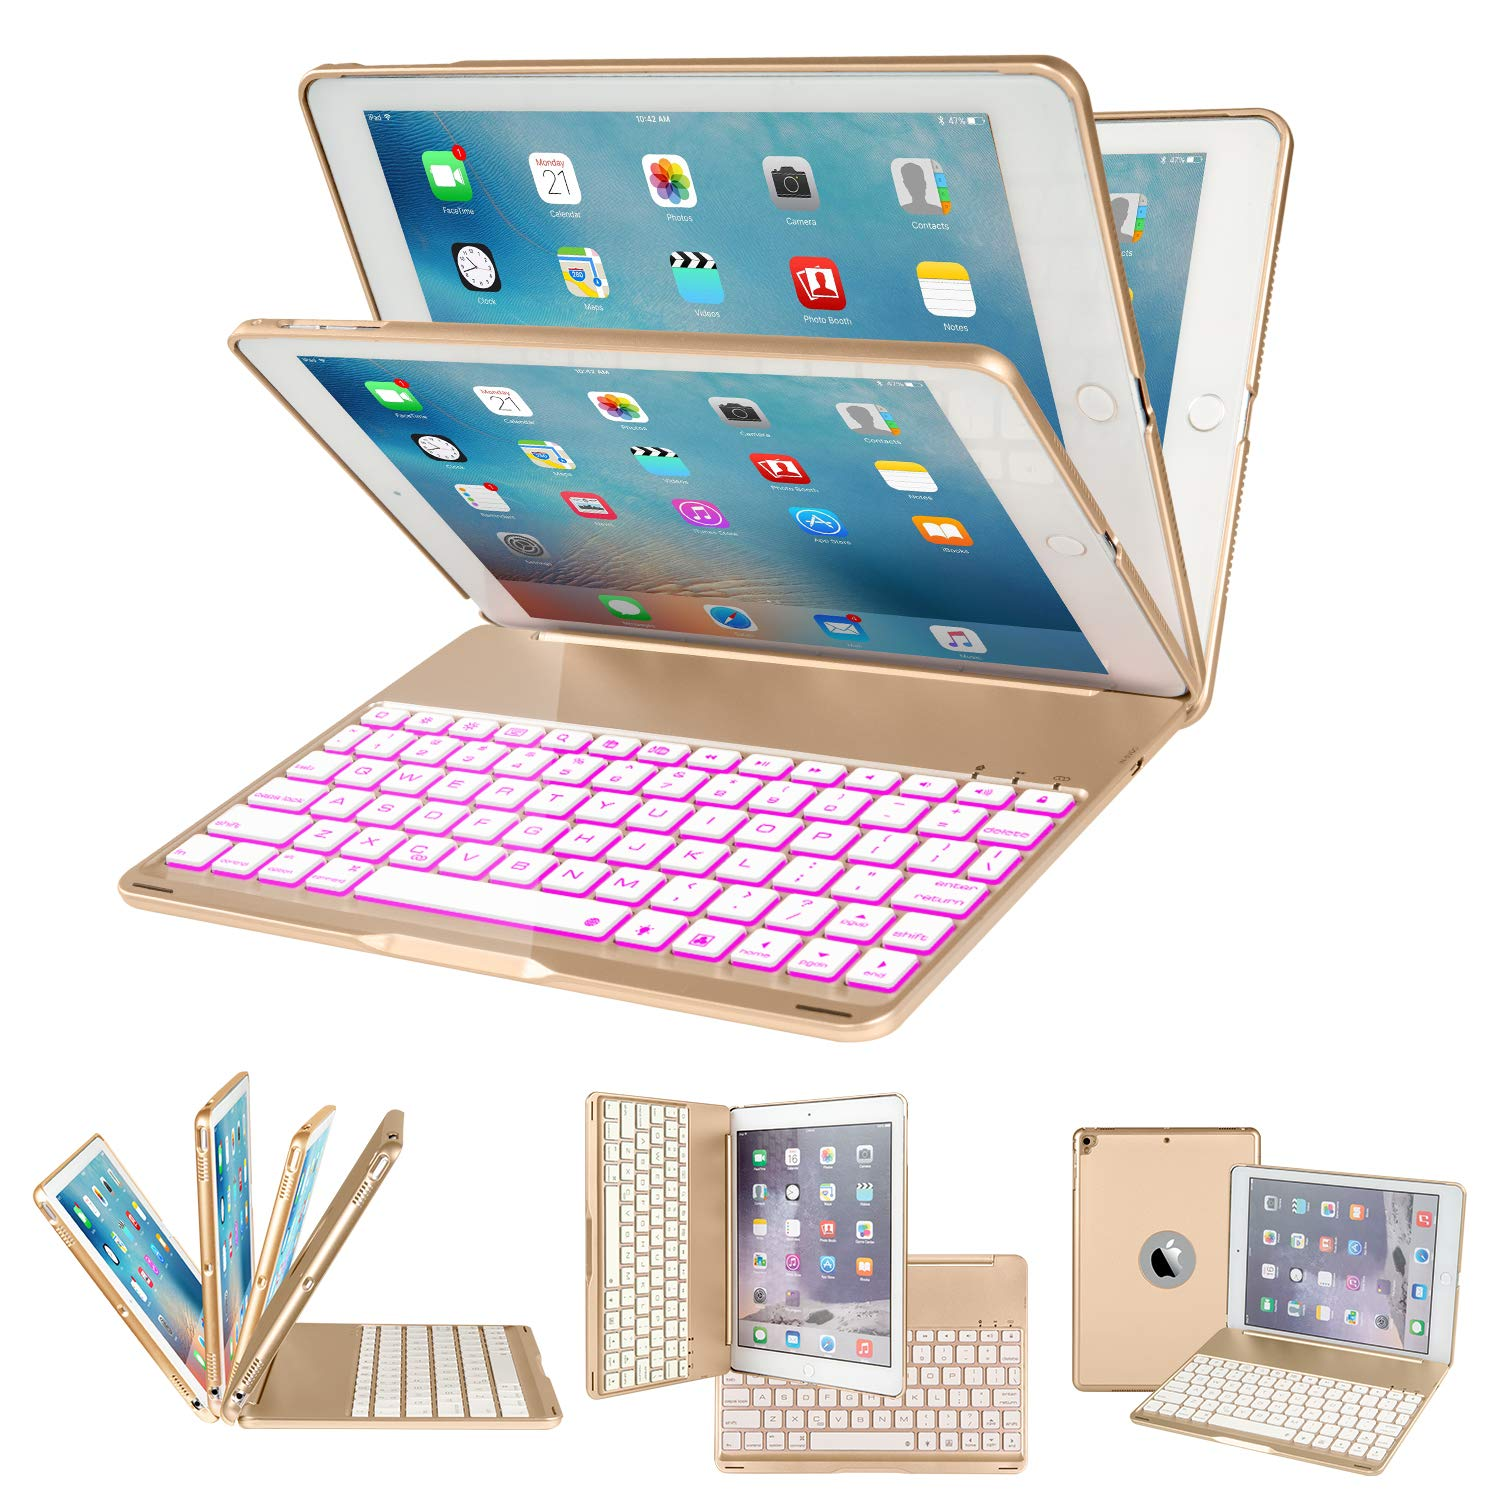 IEGROW iPad Keyboard Case for iPad 6th Gen (2018)- iPad 5th Gen (2017)- iPad Pro 9.7- iPad Air- iPad Air 2-135 Degree Rotation- 7 Color Backlits- Wireless Bluetooth Cover with Keyboard (Gold-F8AS)